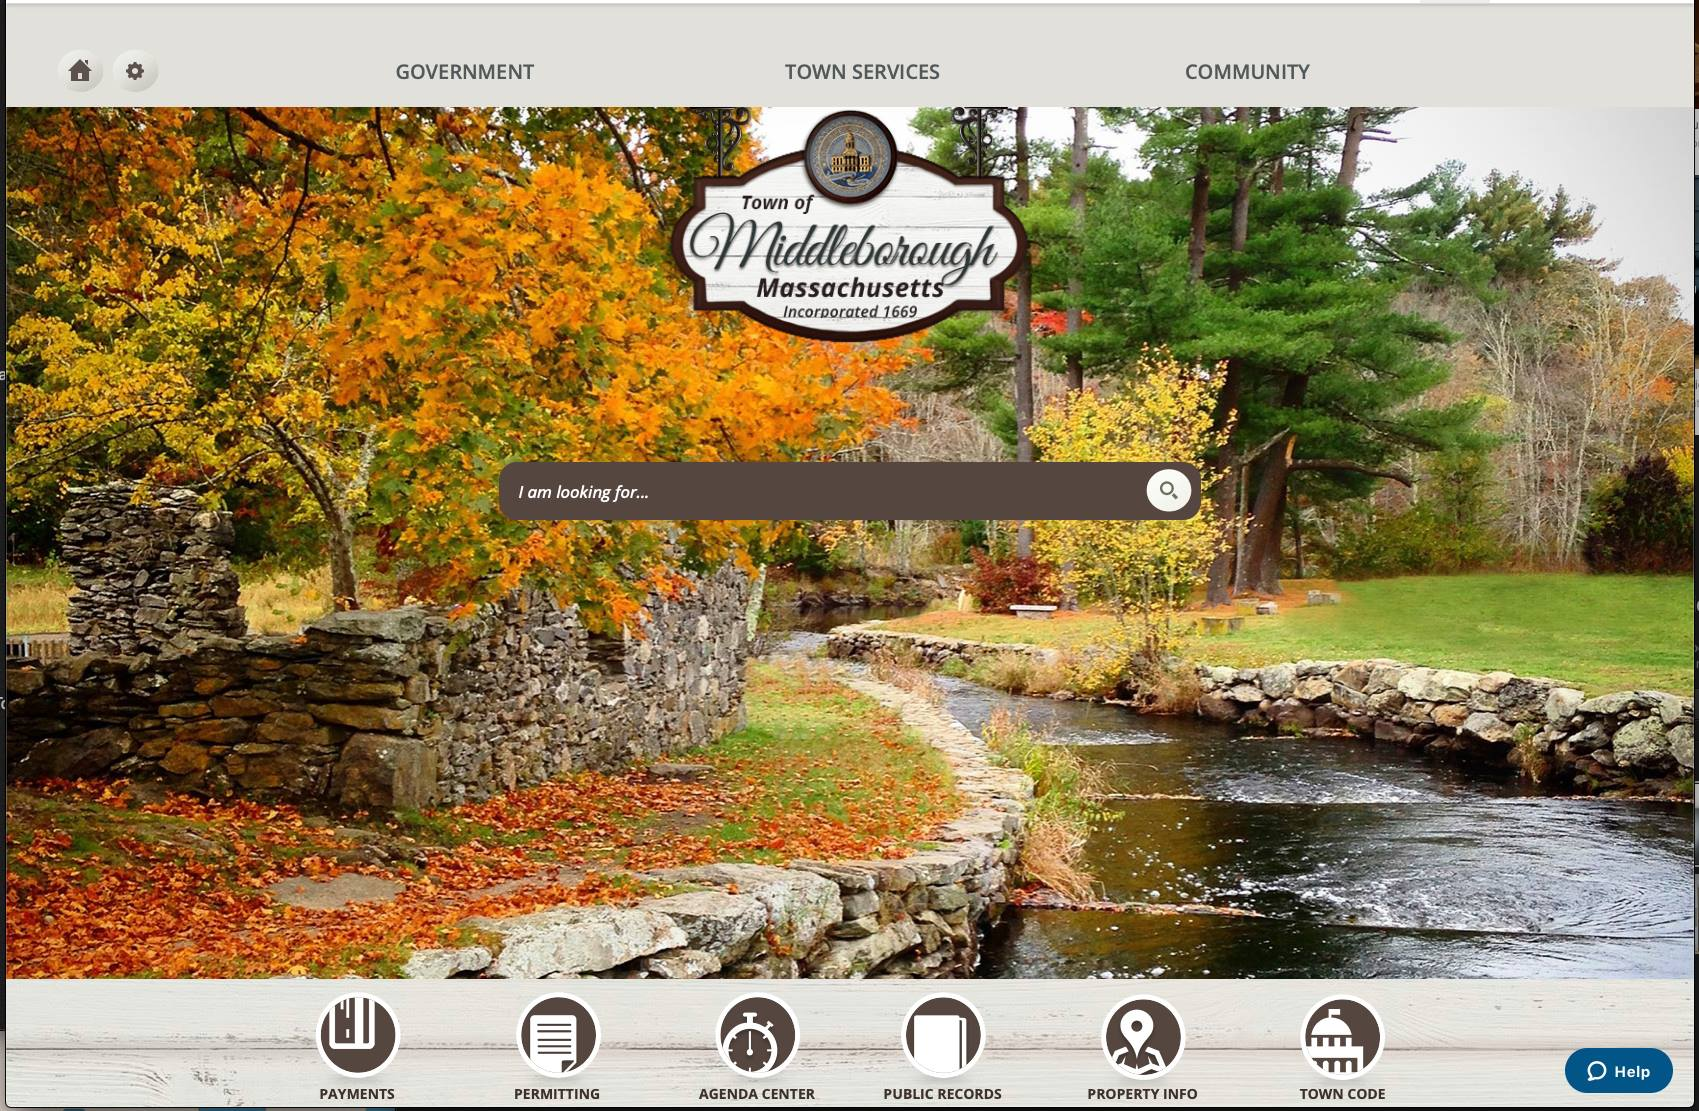 image of website homepage